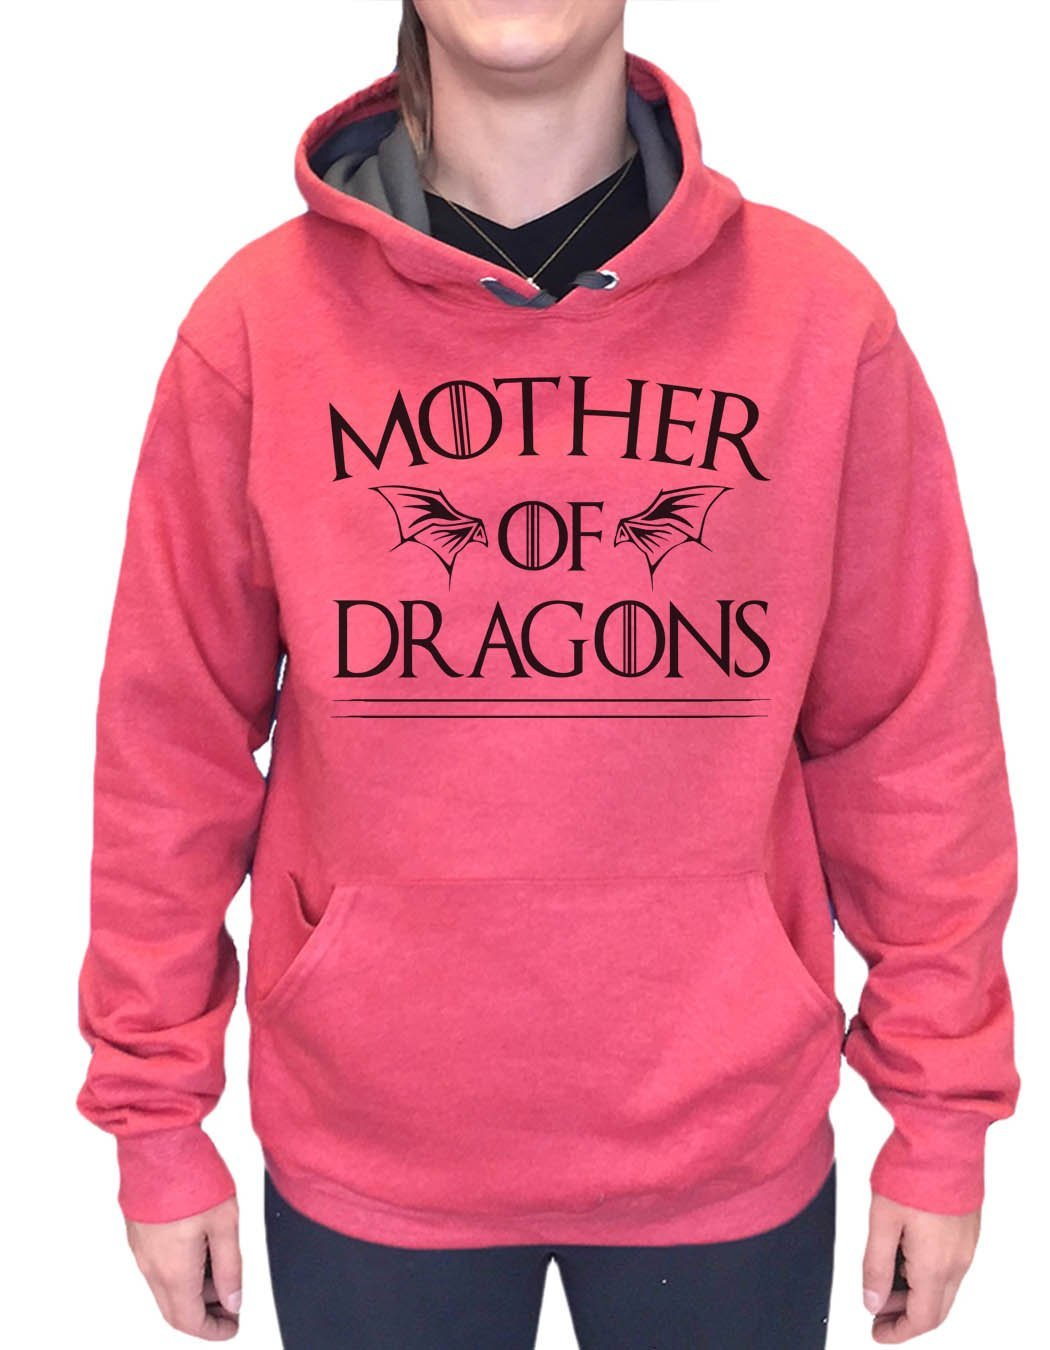 UNISEX HOODIE - Mother Of Dragons Game Of Thrones - FUNNY MENS AND WOMENS HOODED SWEATSHIRTS - 2282 Funny Shirt Small / Cranberry Red